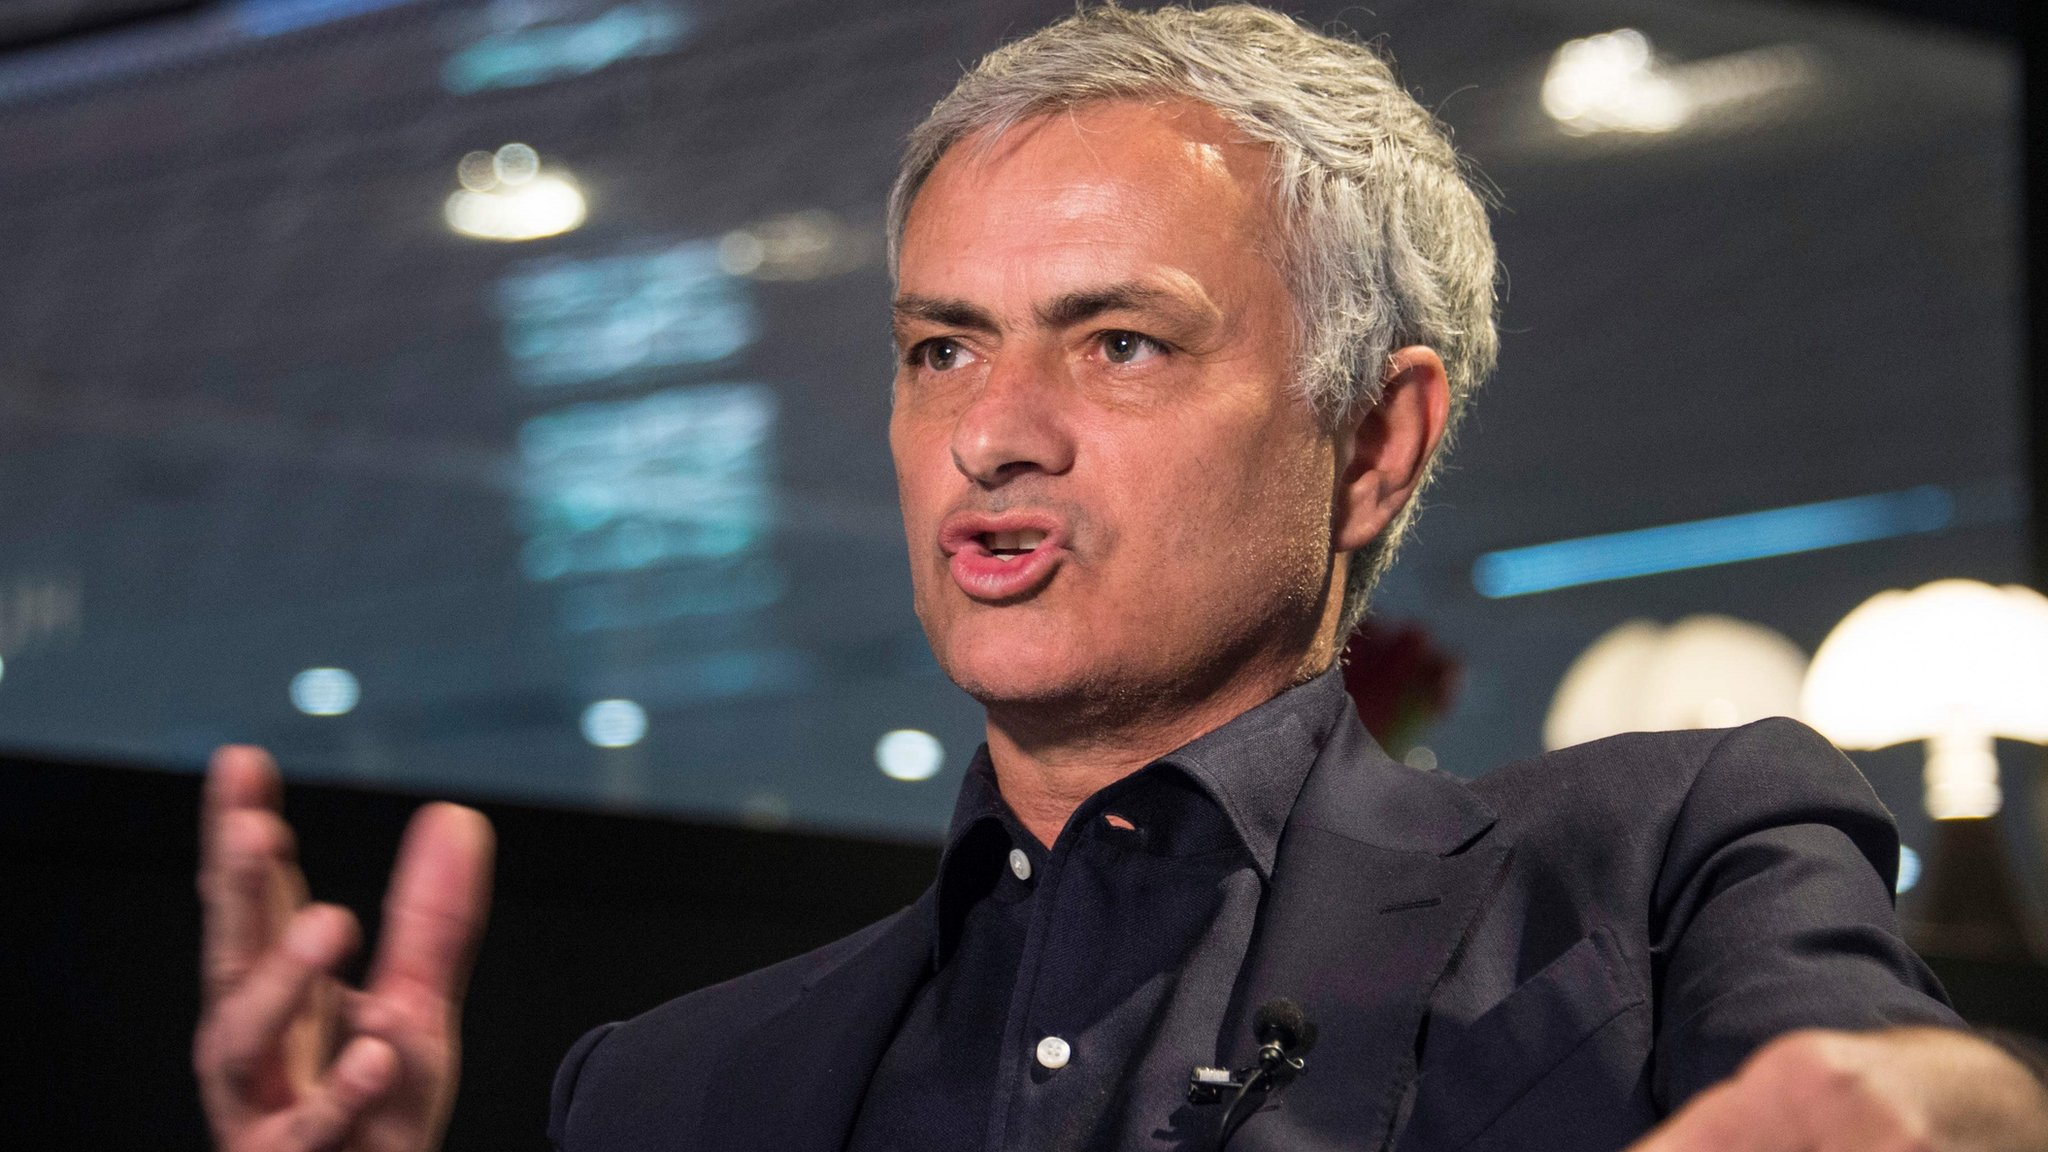 'I am preparing myself for the next one' - Mourinho eyes June return to management